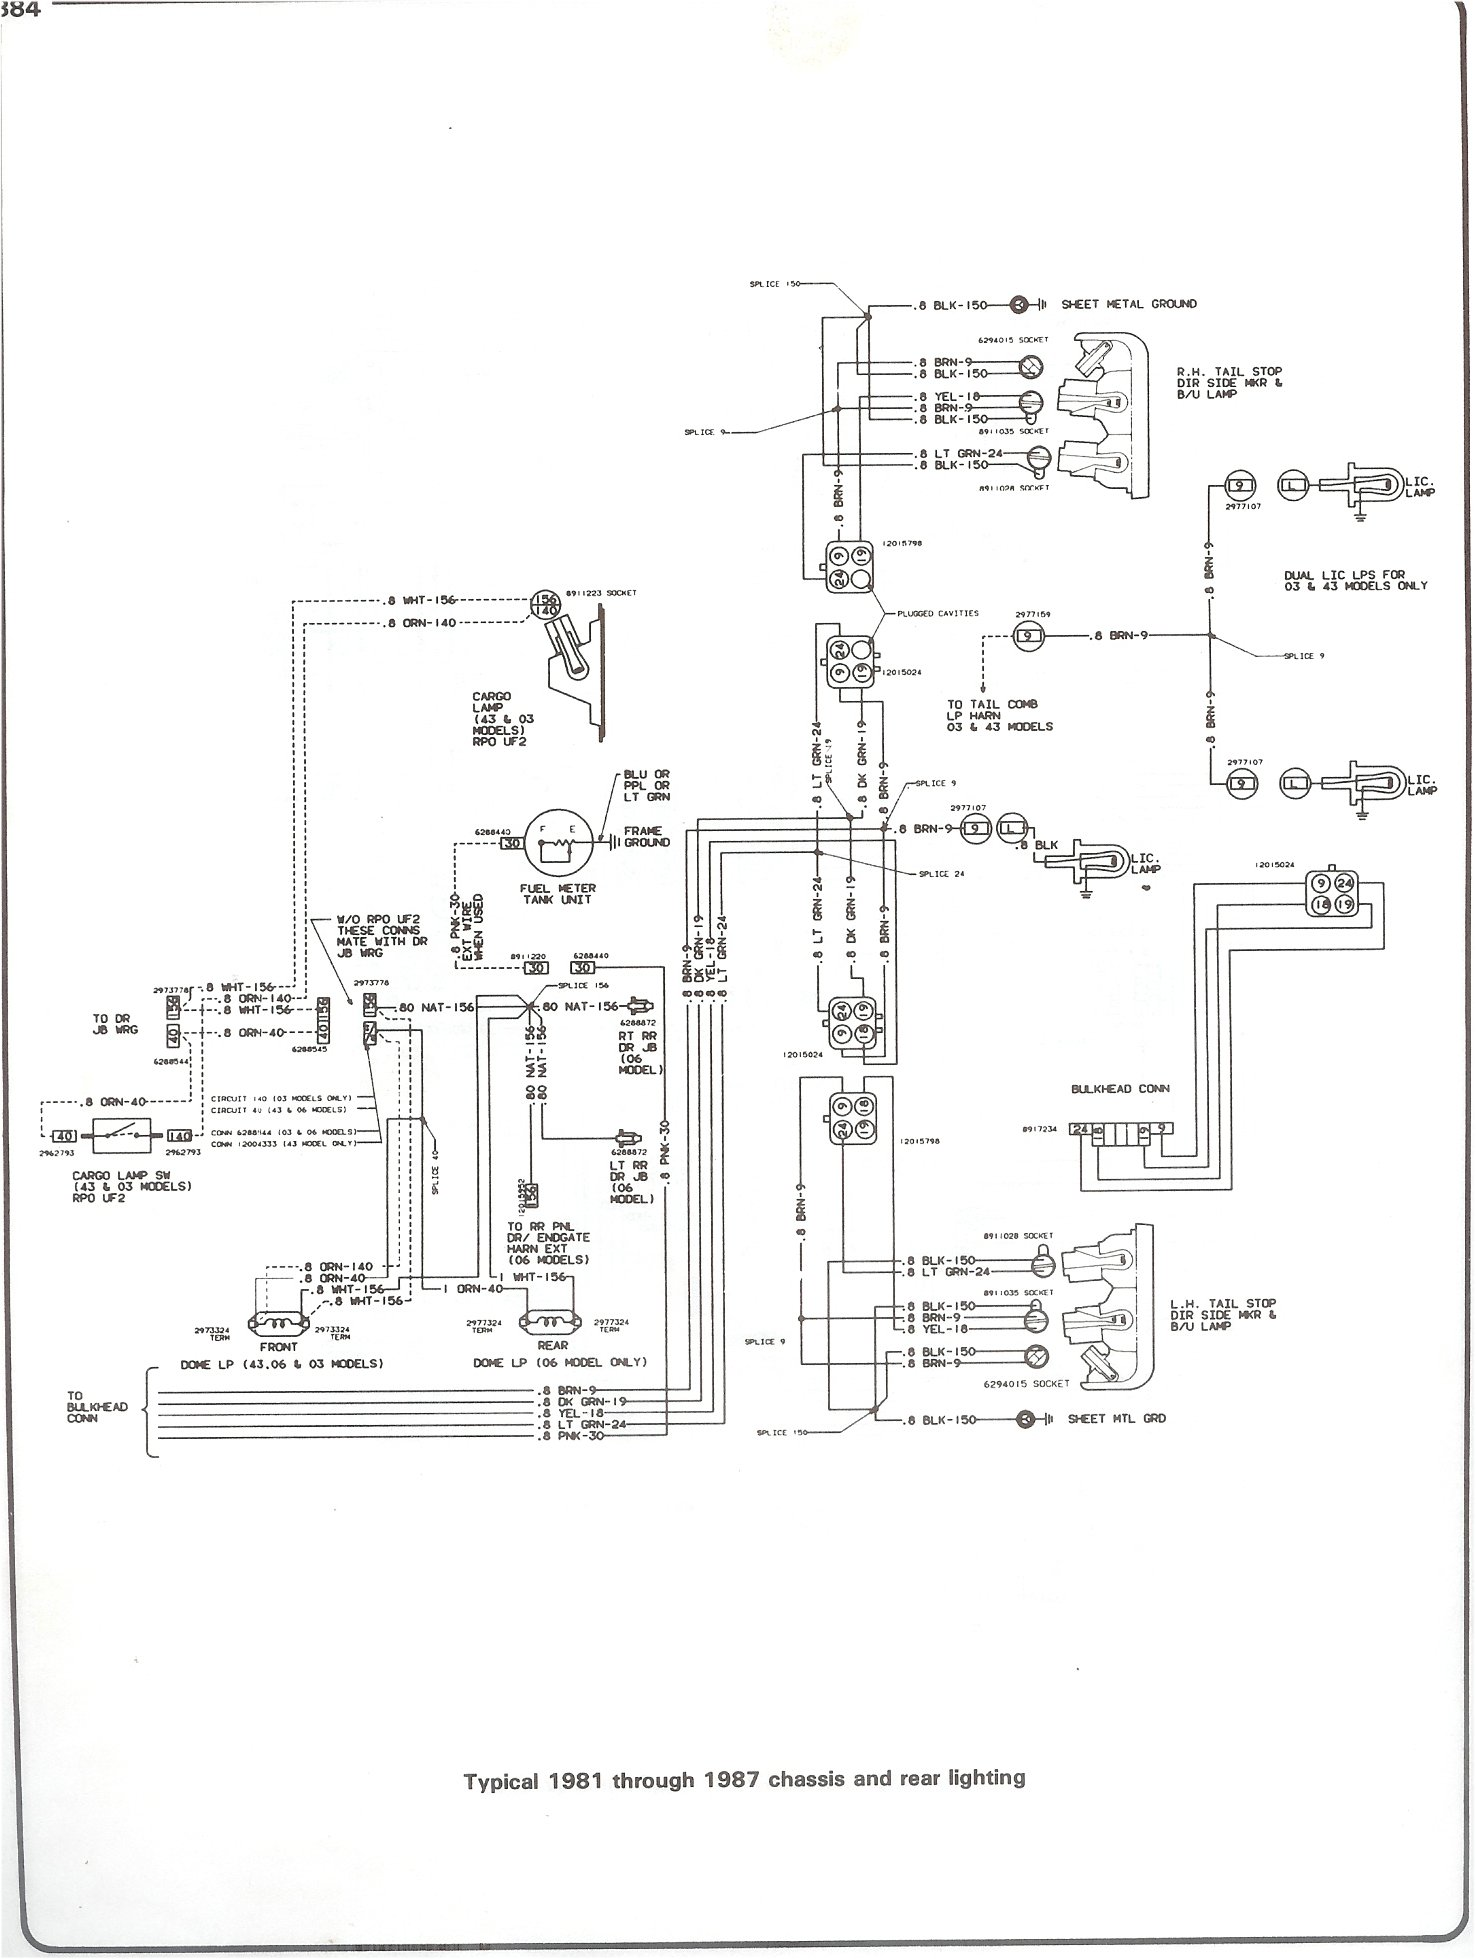 hight resolution of 81 87 chassis and rear lighting complete 73 87 wiring diagrams